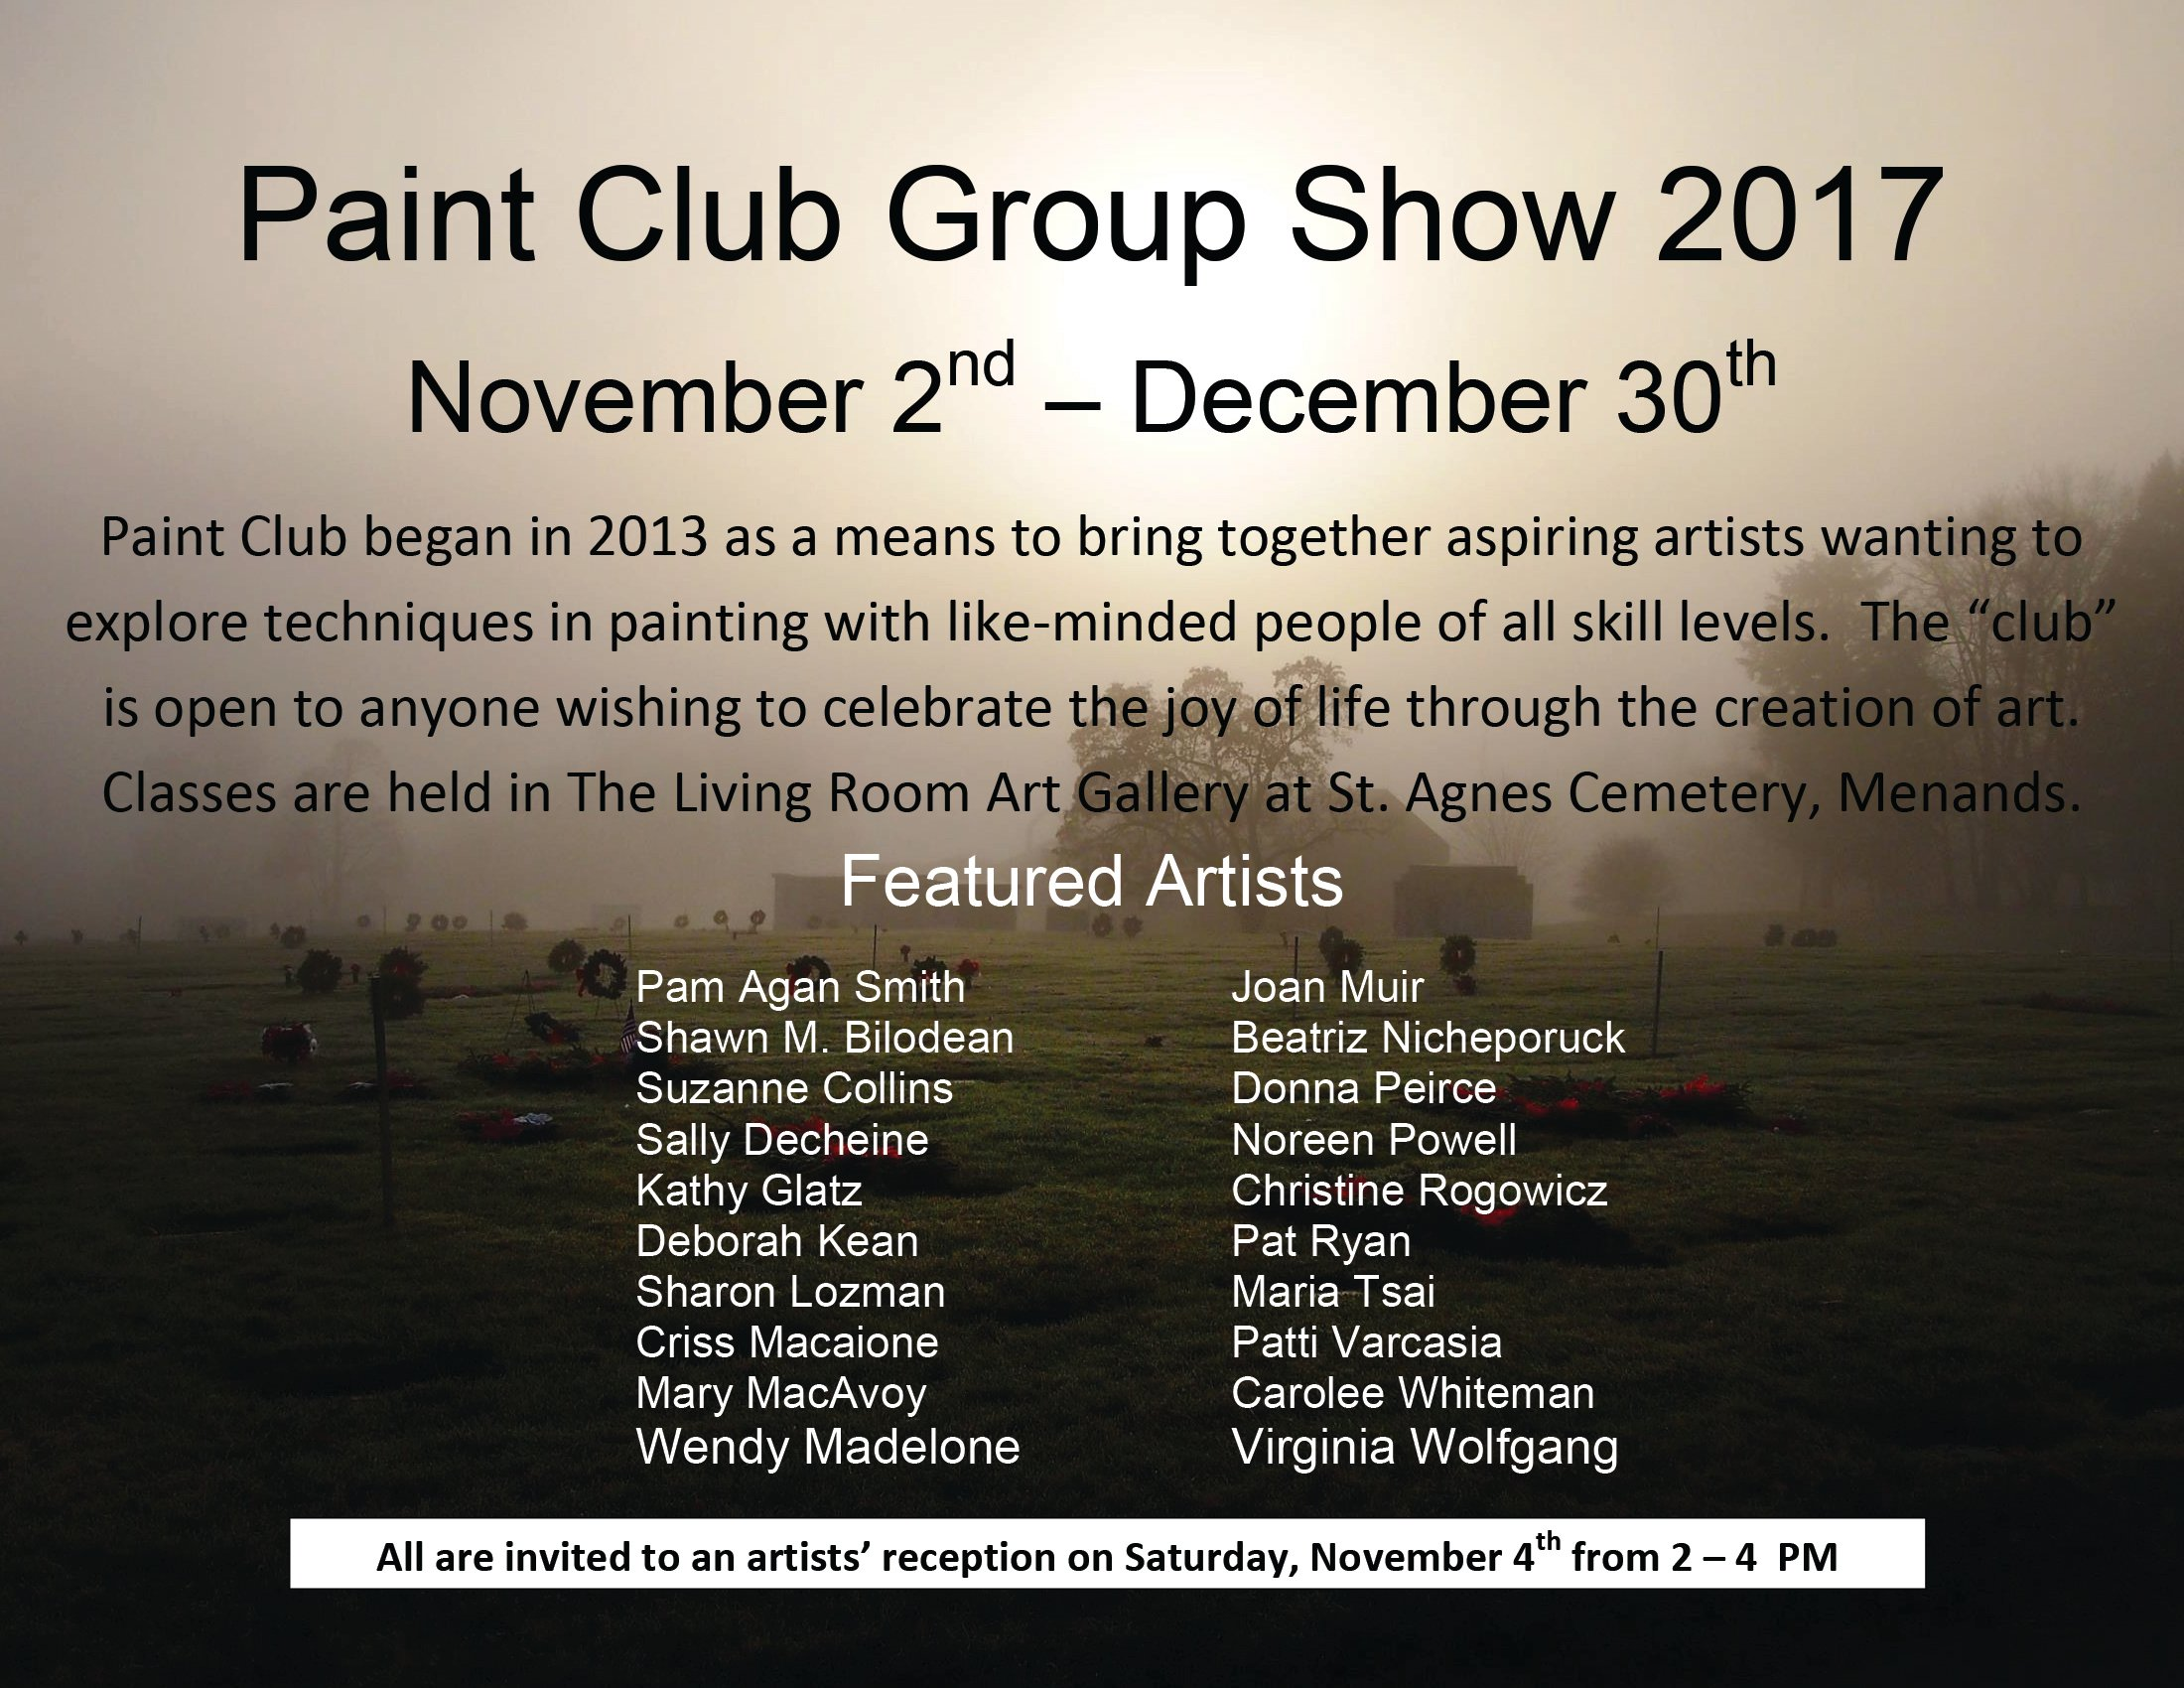 Paint Club Group Art Exhibit 2017 flyer